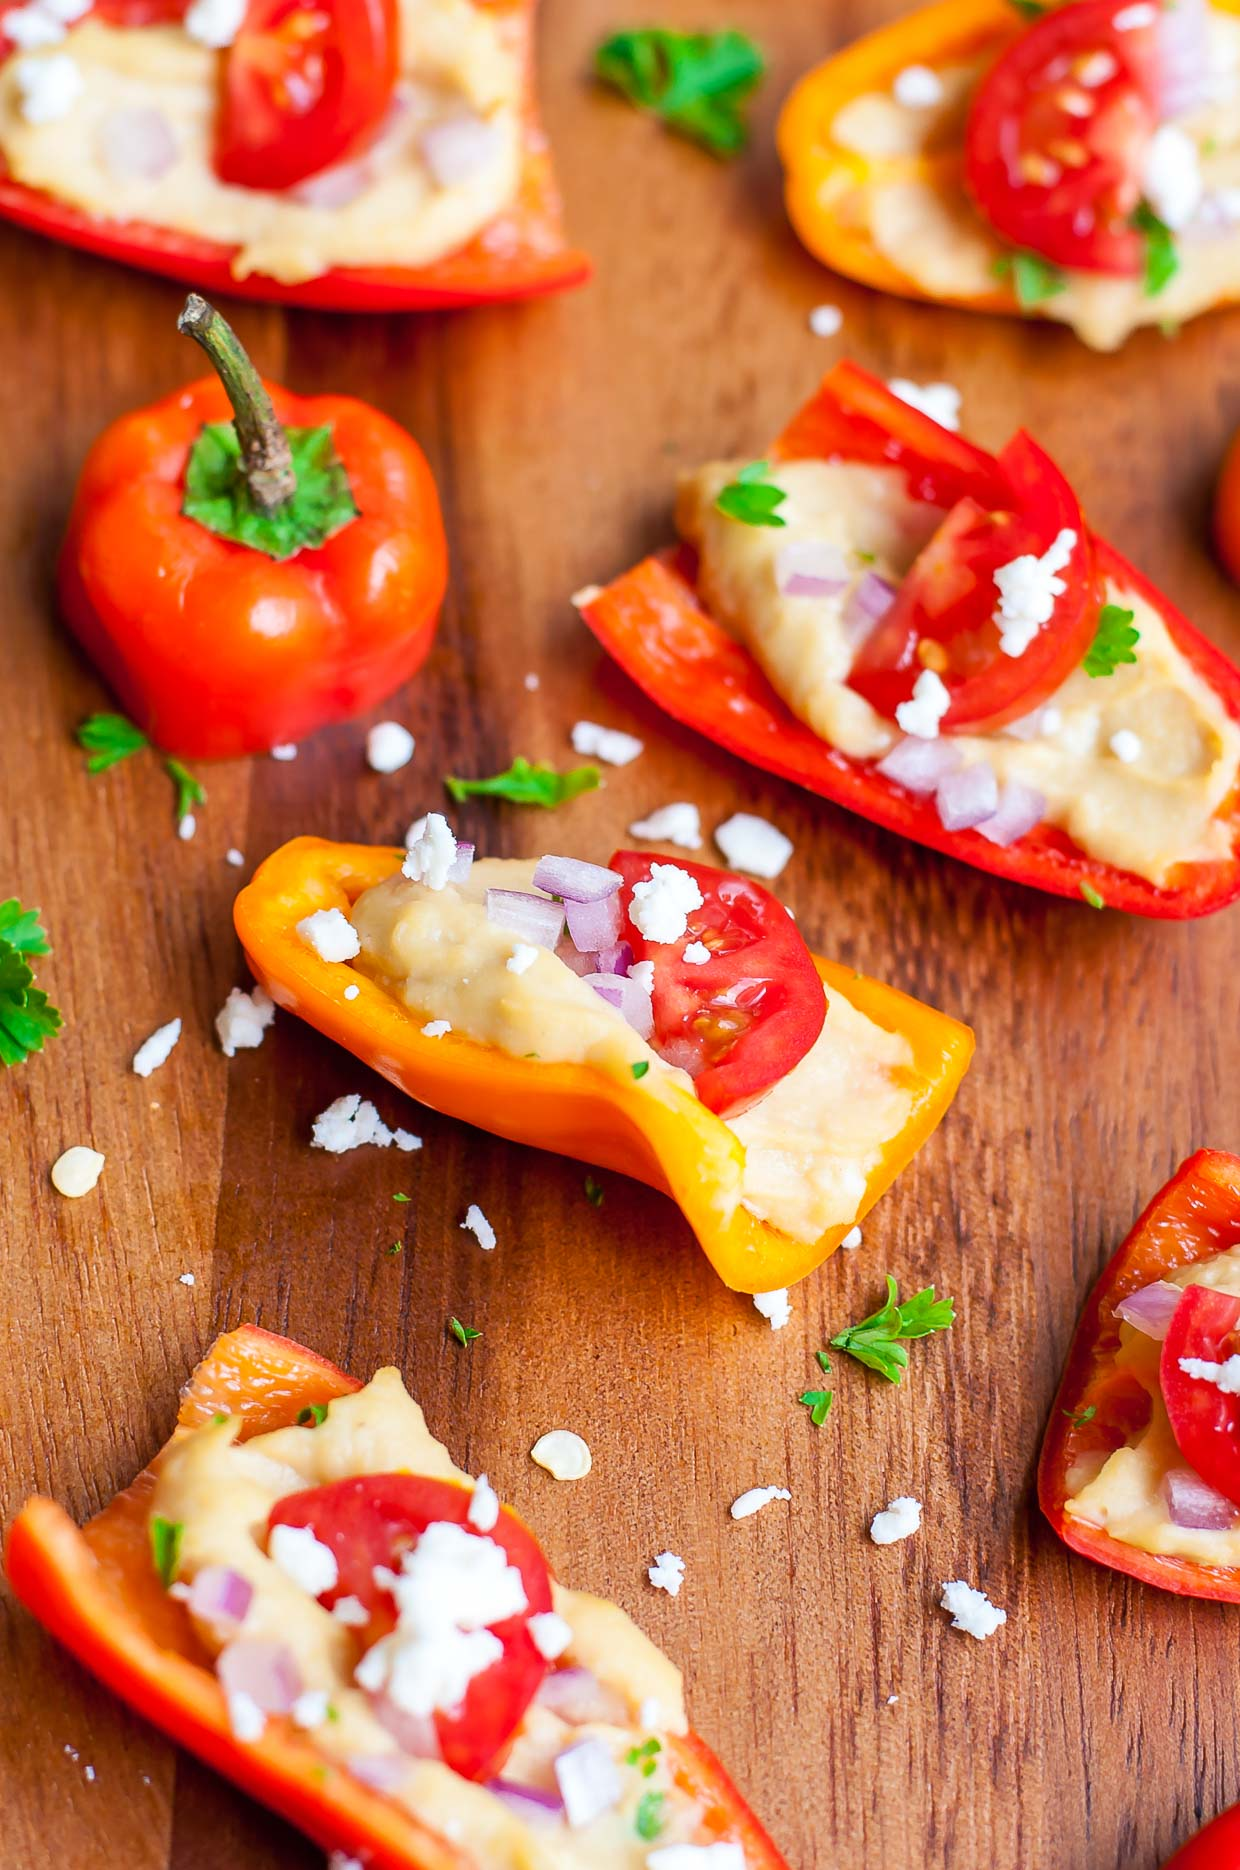 Quick, easy, and totally tasty, these healthy hummus stuffed peppers are sure to be a hit at your next party!